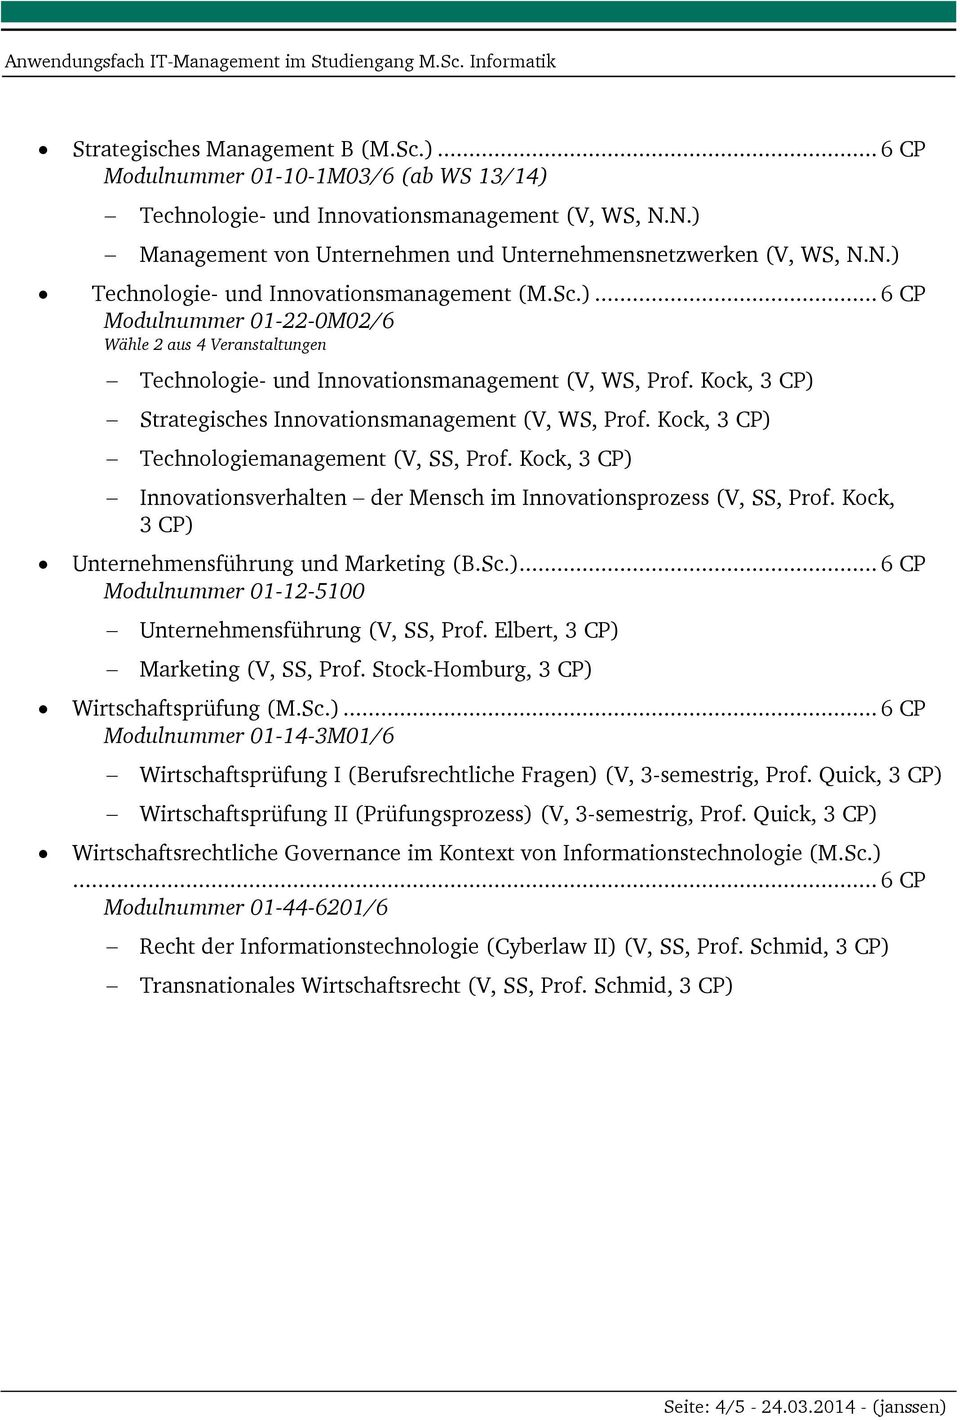 Kock, Strategisches Innovationsmanagement (V, WS, Prof. Kock, Technologiemanagement (V, SS, Prof. Kock, Innovationsverhalten der Mensch im Innovationsprozess (V, SS, Prof.